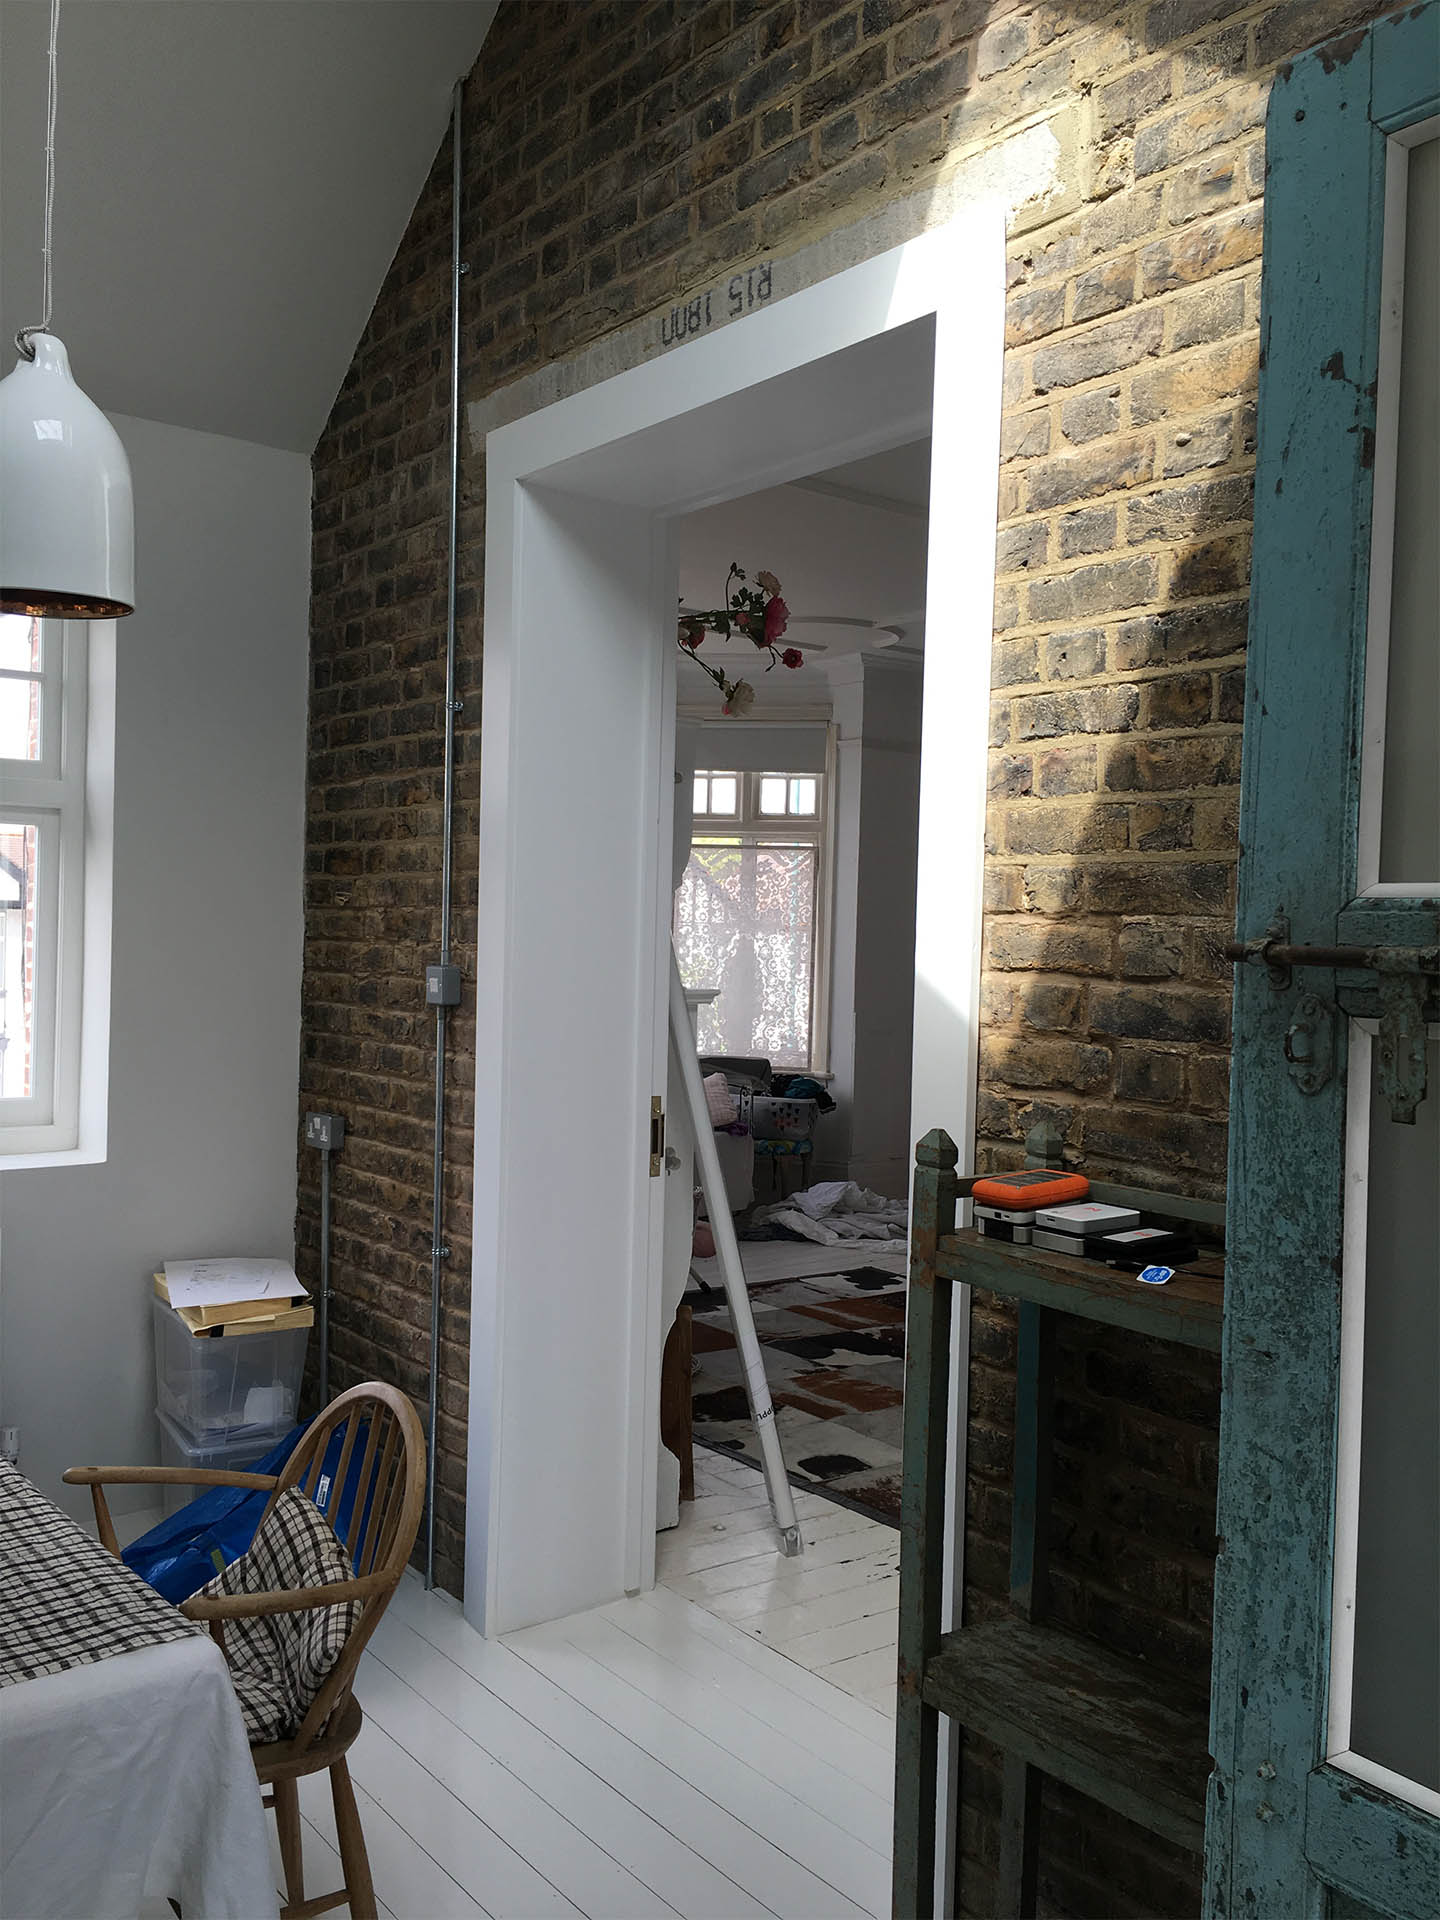 NW10 project knocked through wall